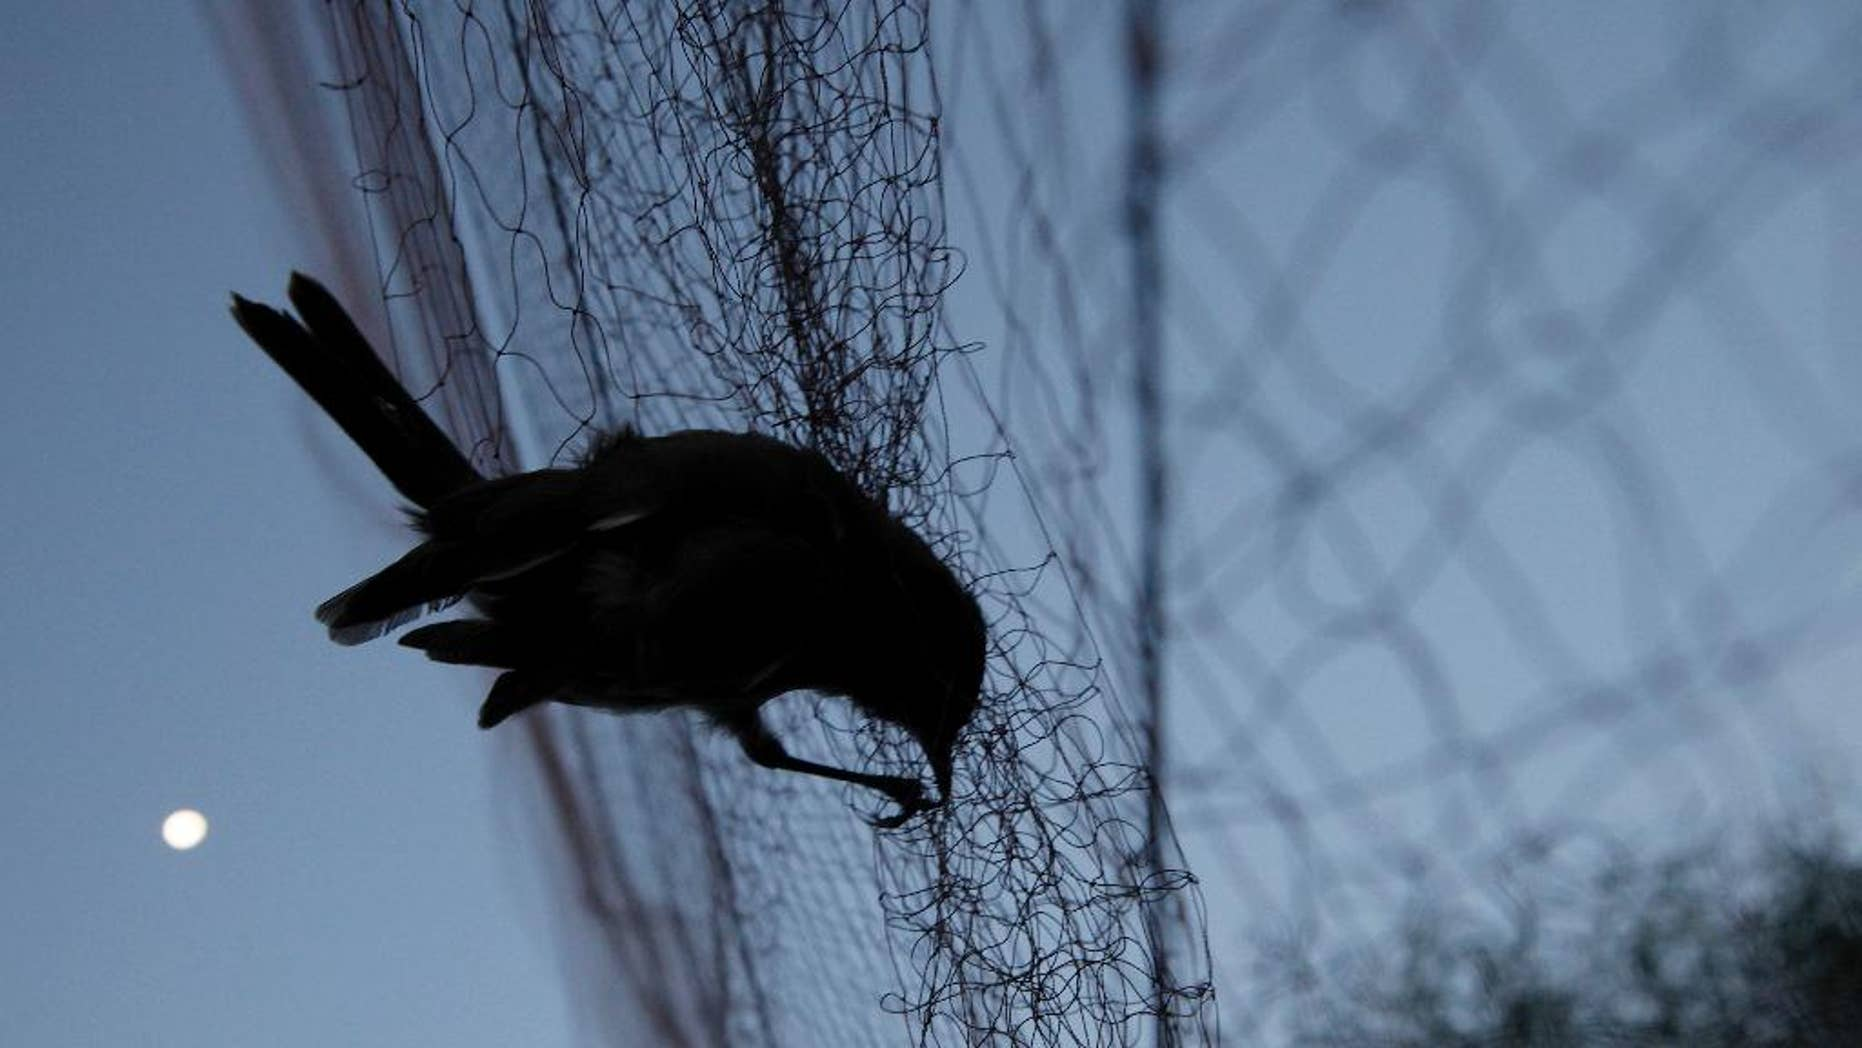 FILE - In this Nov. 3, 2012 file photo, a bird is entangled in a net used by poachers to trap birds, in the early morning in the Larnaca district of Cyprus. A spokesman for Britain's two military bases on Cyprus said on Wednesday Feb. 1, 2017, there will be no let-up in an ongoing crackdown against illegal bird trapping on bases territory.(AP Photo/Petros Karadjias, File)